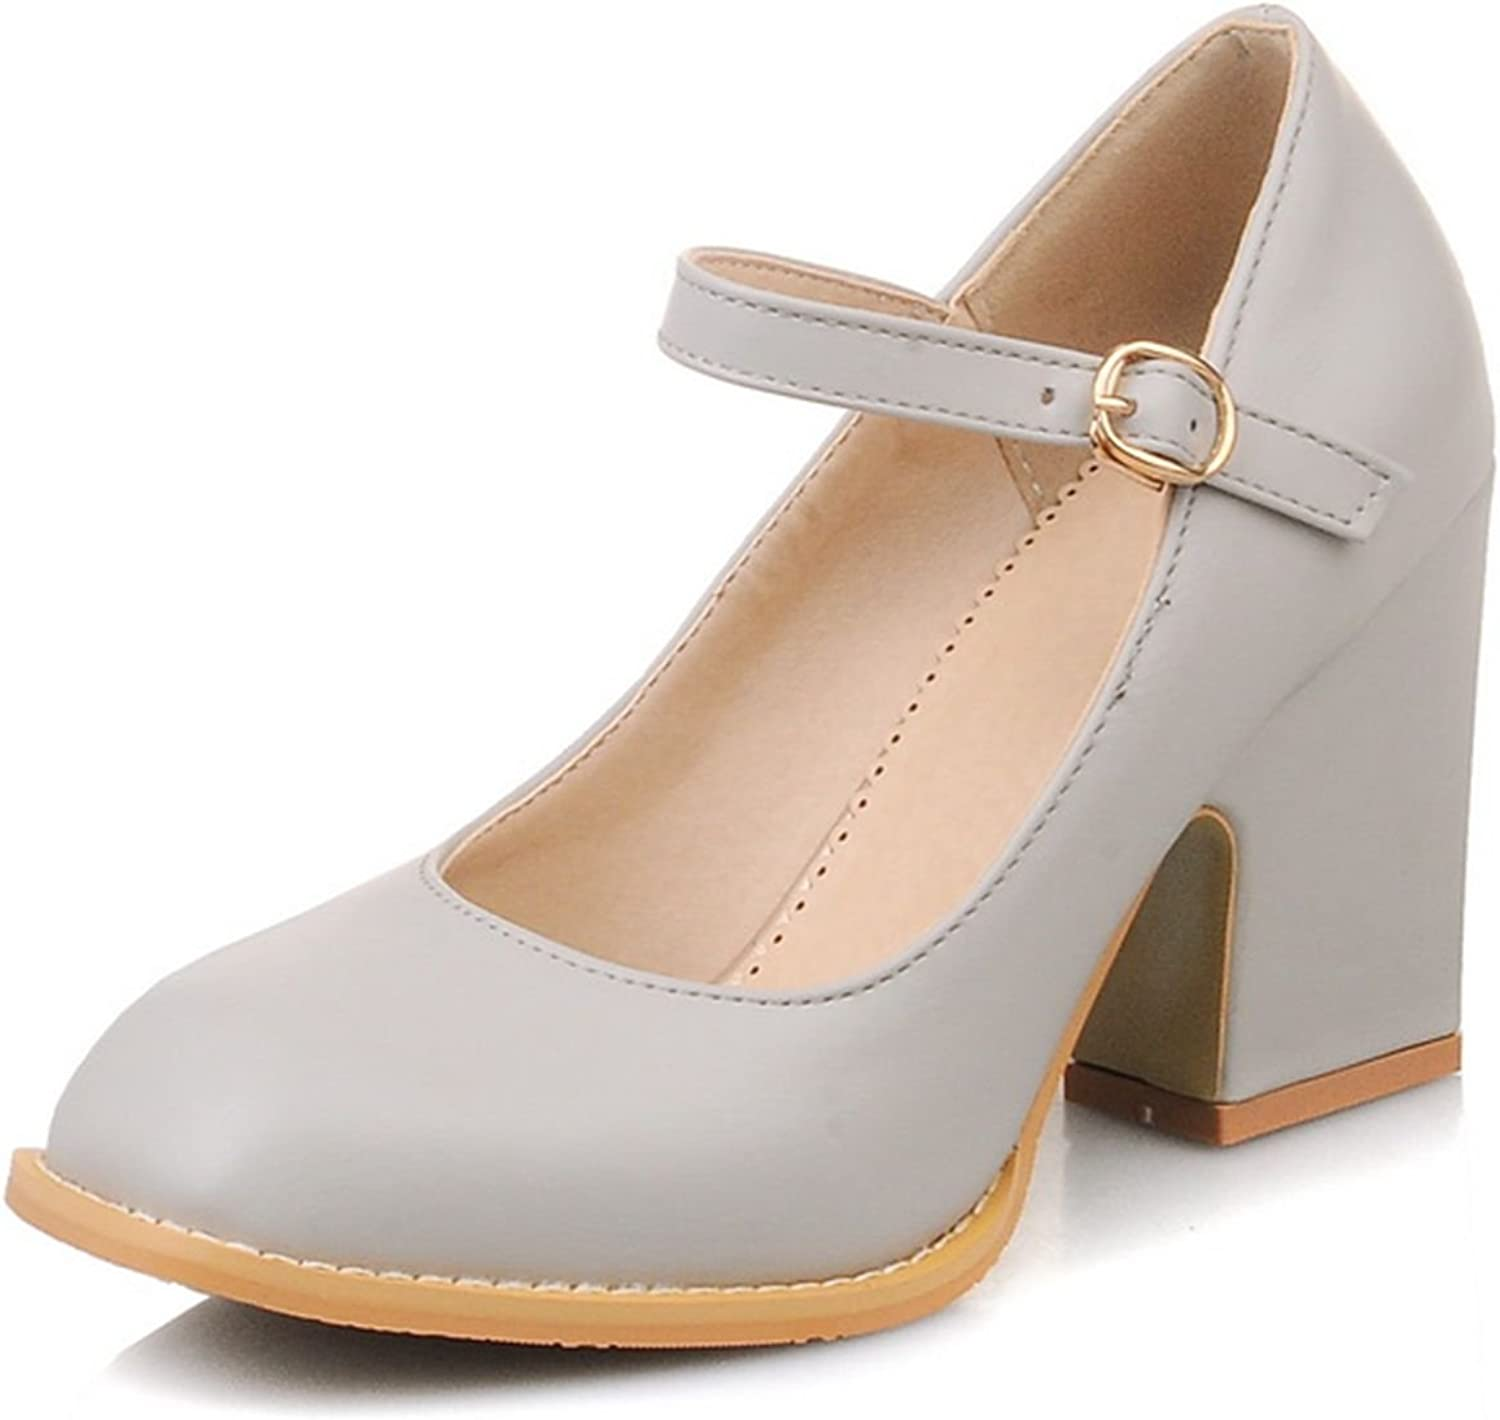 DecoStain Women's Causal Faux Leather Ankle Strap Mary Janes Block High Heel Pumps shoes Grey